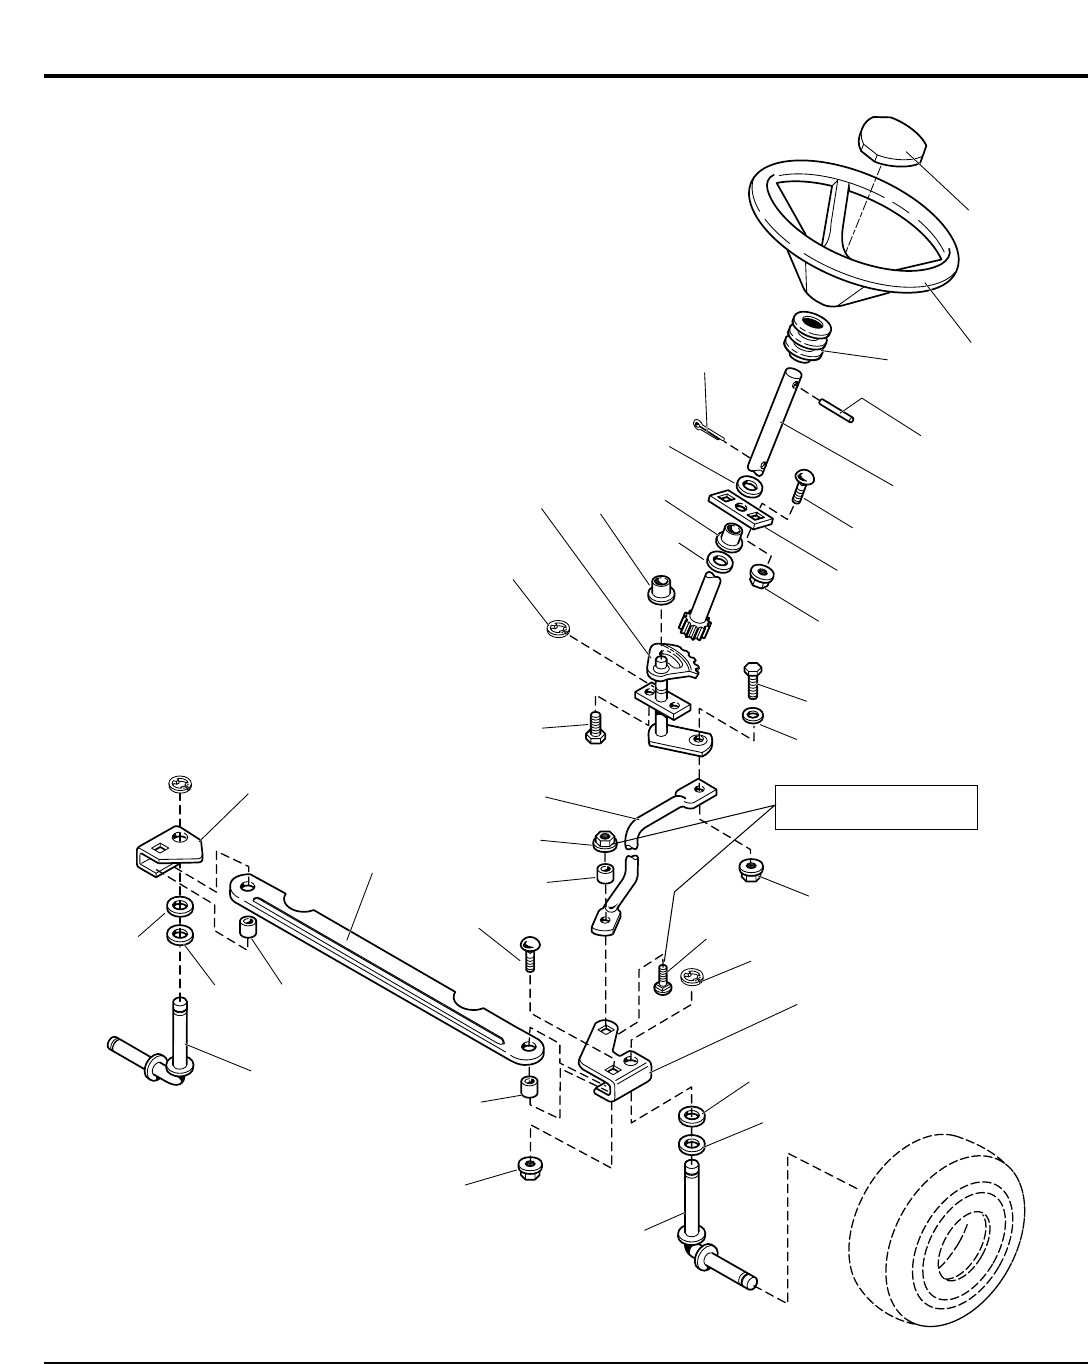 Page 6 of Simplicity Lawn Mower Express Series User Guide